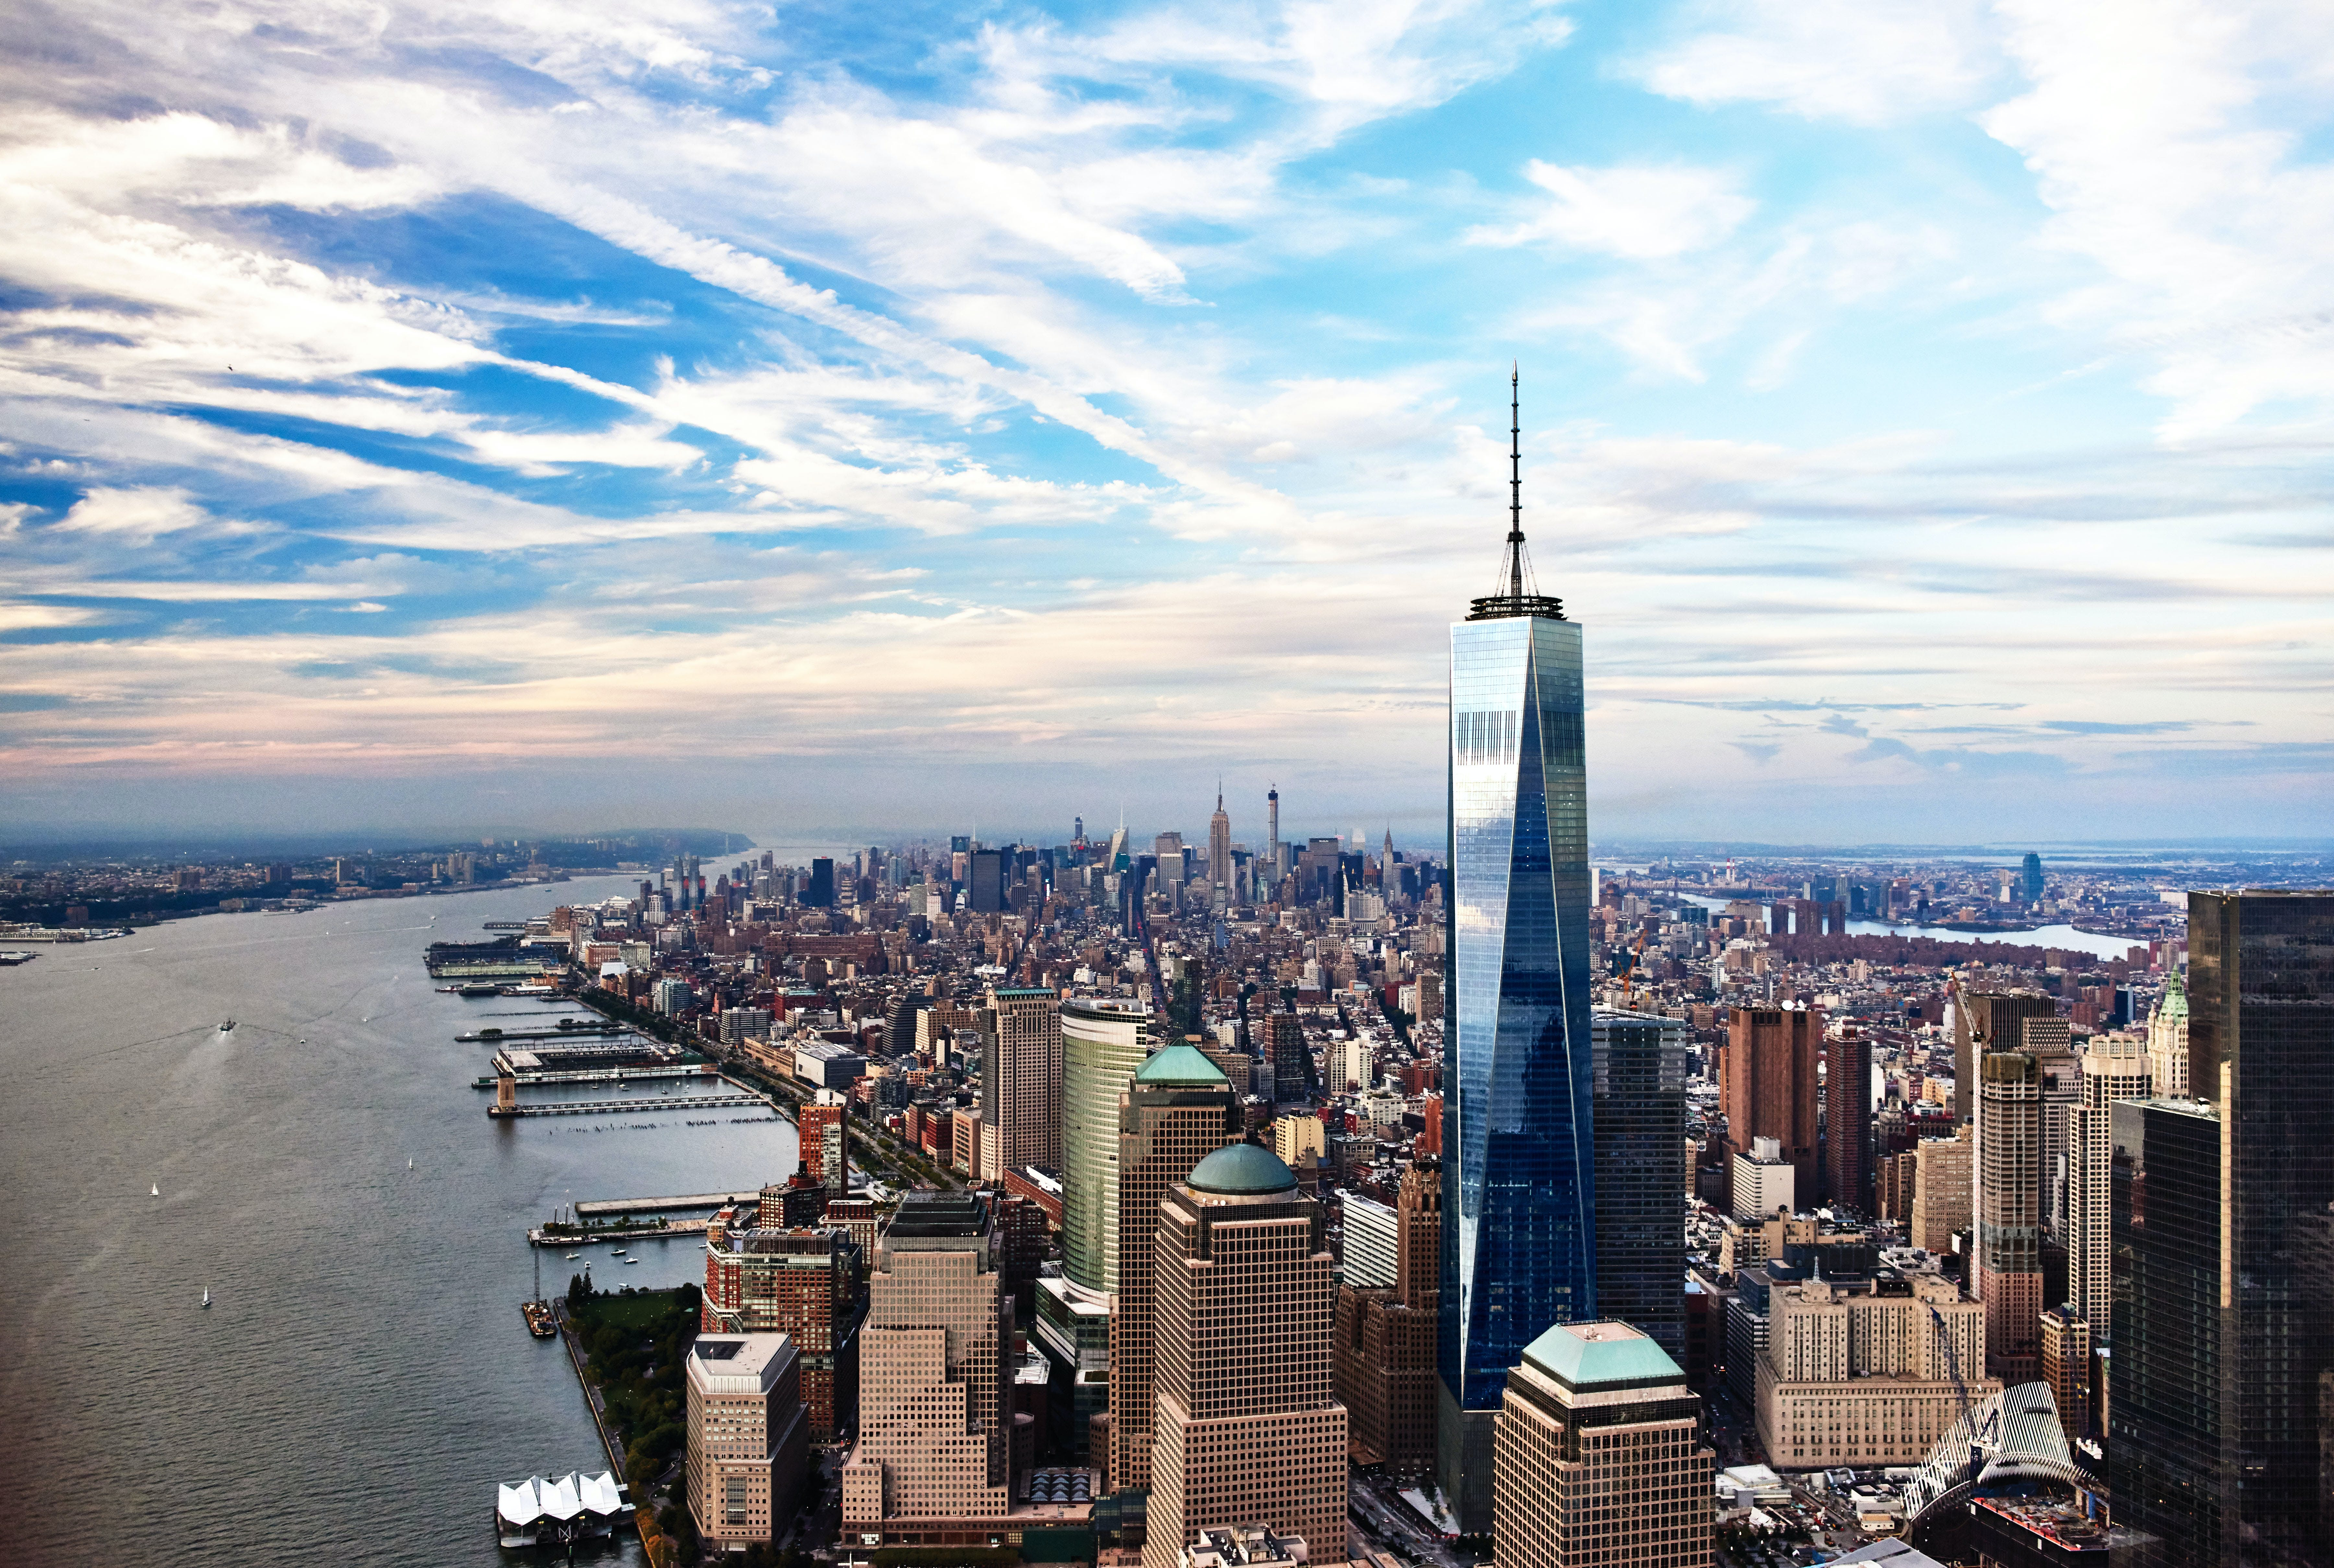 One World Observatory skip-the-line ticket